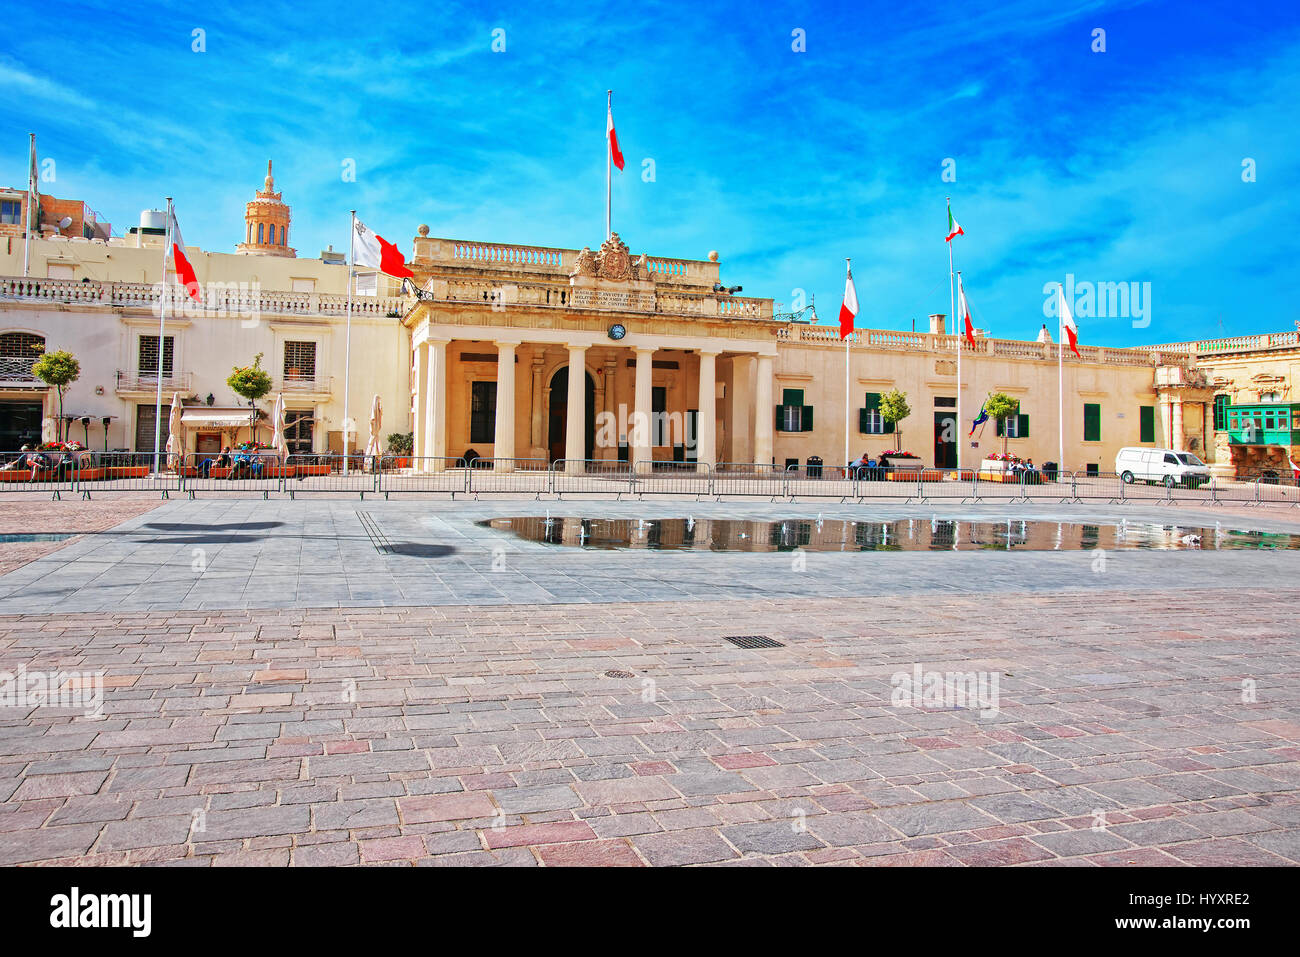 Valletta, Malta - April 3, 2014: People at Guard house on St George Square in Valletta old town, Malta - Stock Image